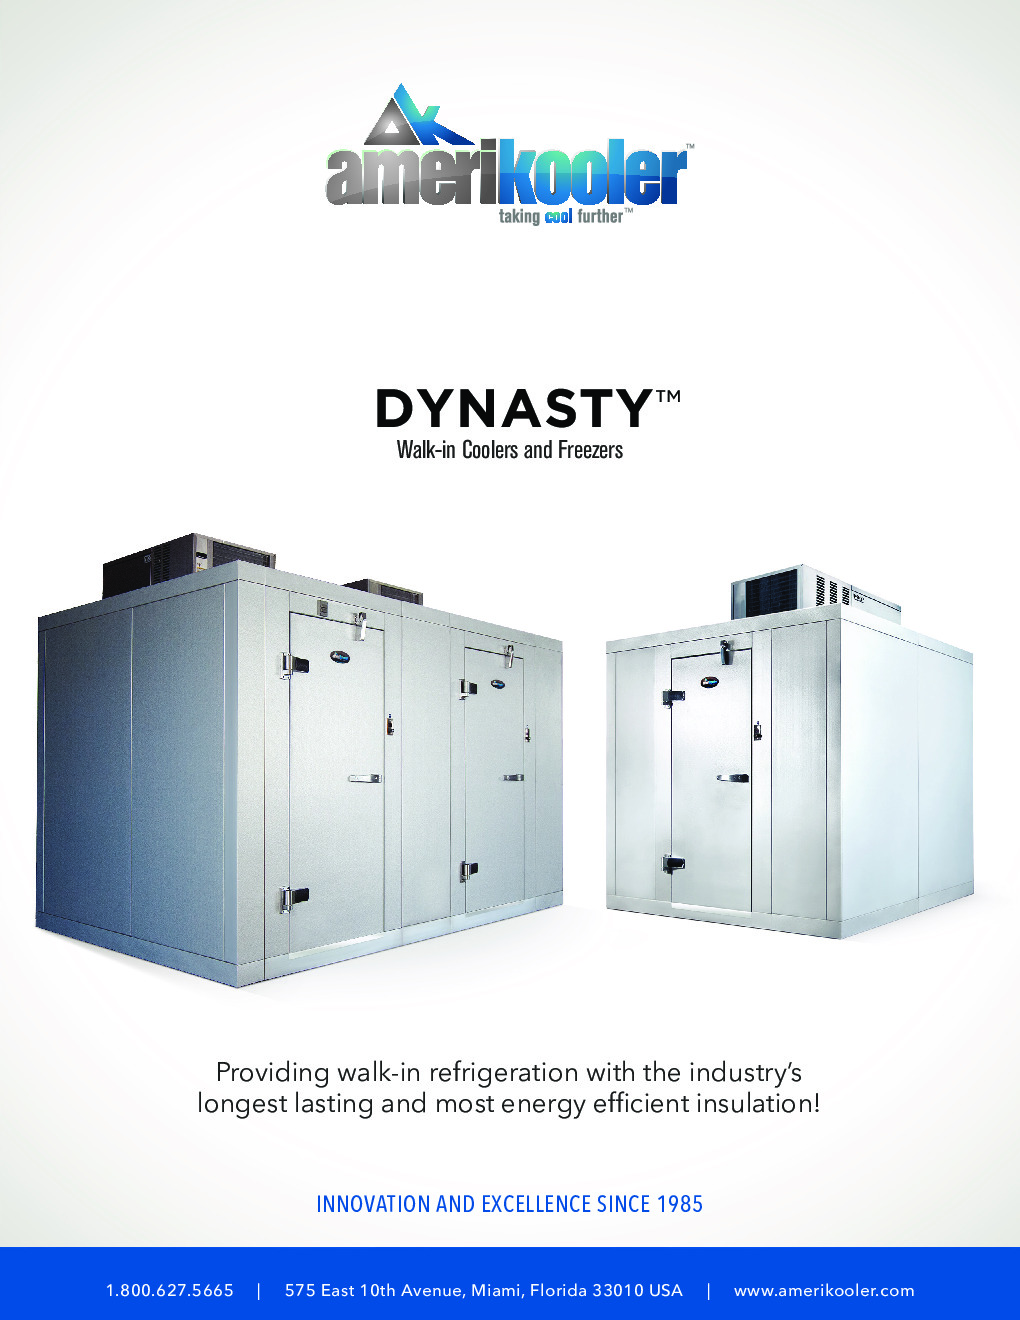 AmeriKooler DW071477N-6/8 Indoor 7' X 14' Walk-In, 8' L Cooler without Floor and 6' L Freezer, Box Only